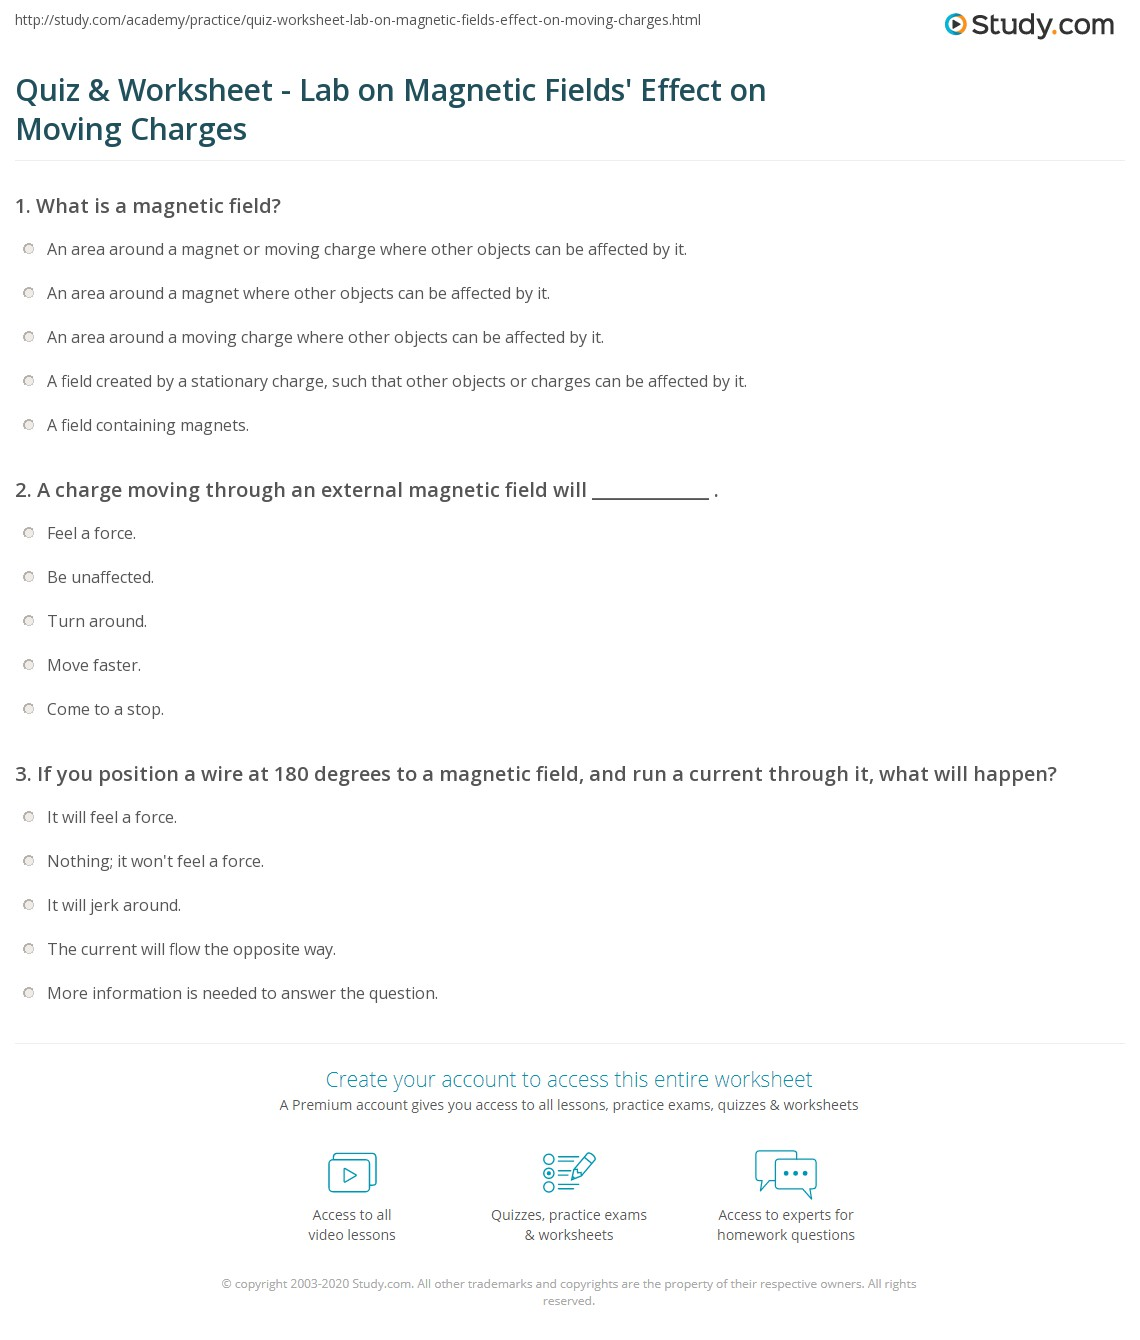 Collection of Magnetic Field Worksheet - Adriaticatoursrl